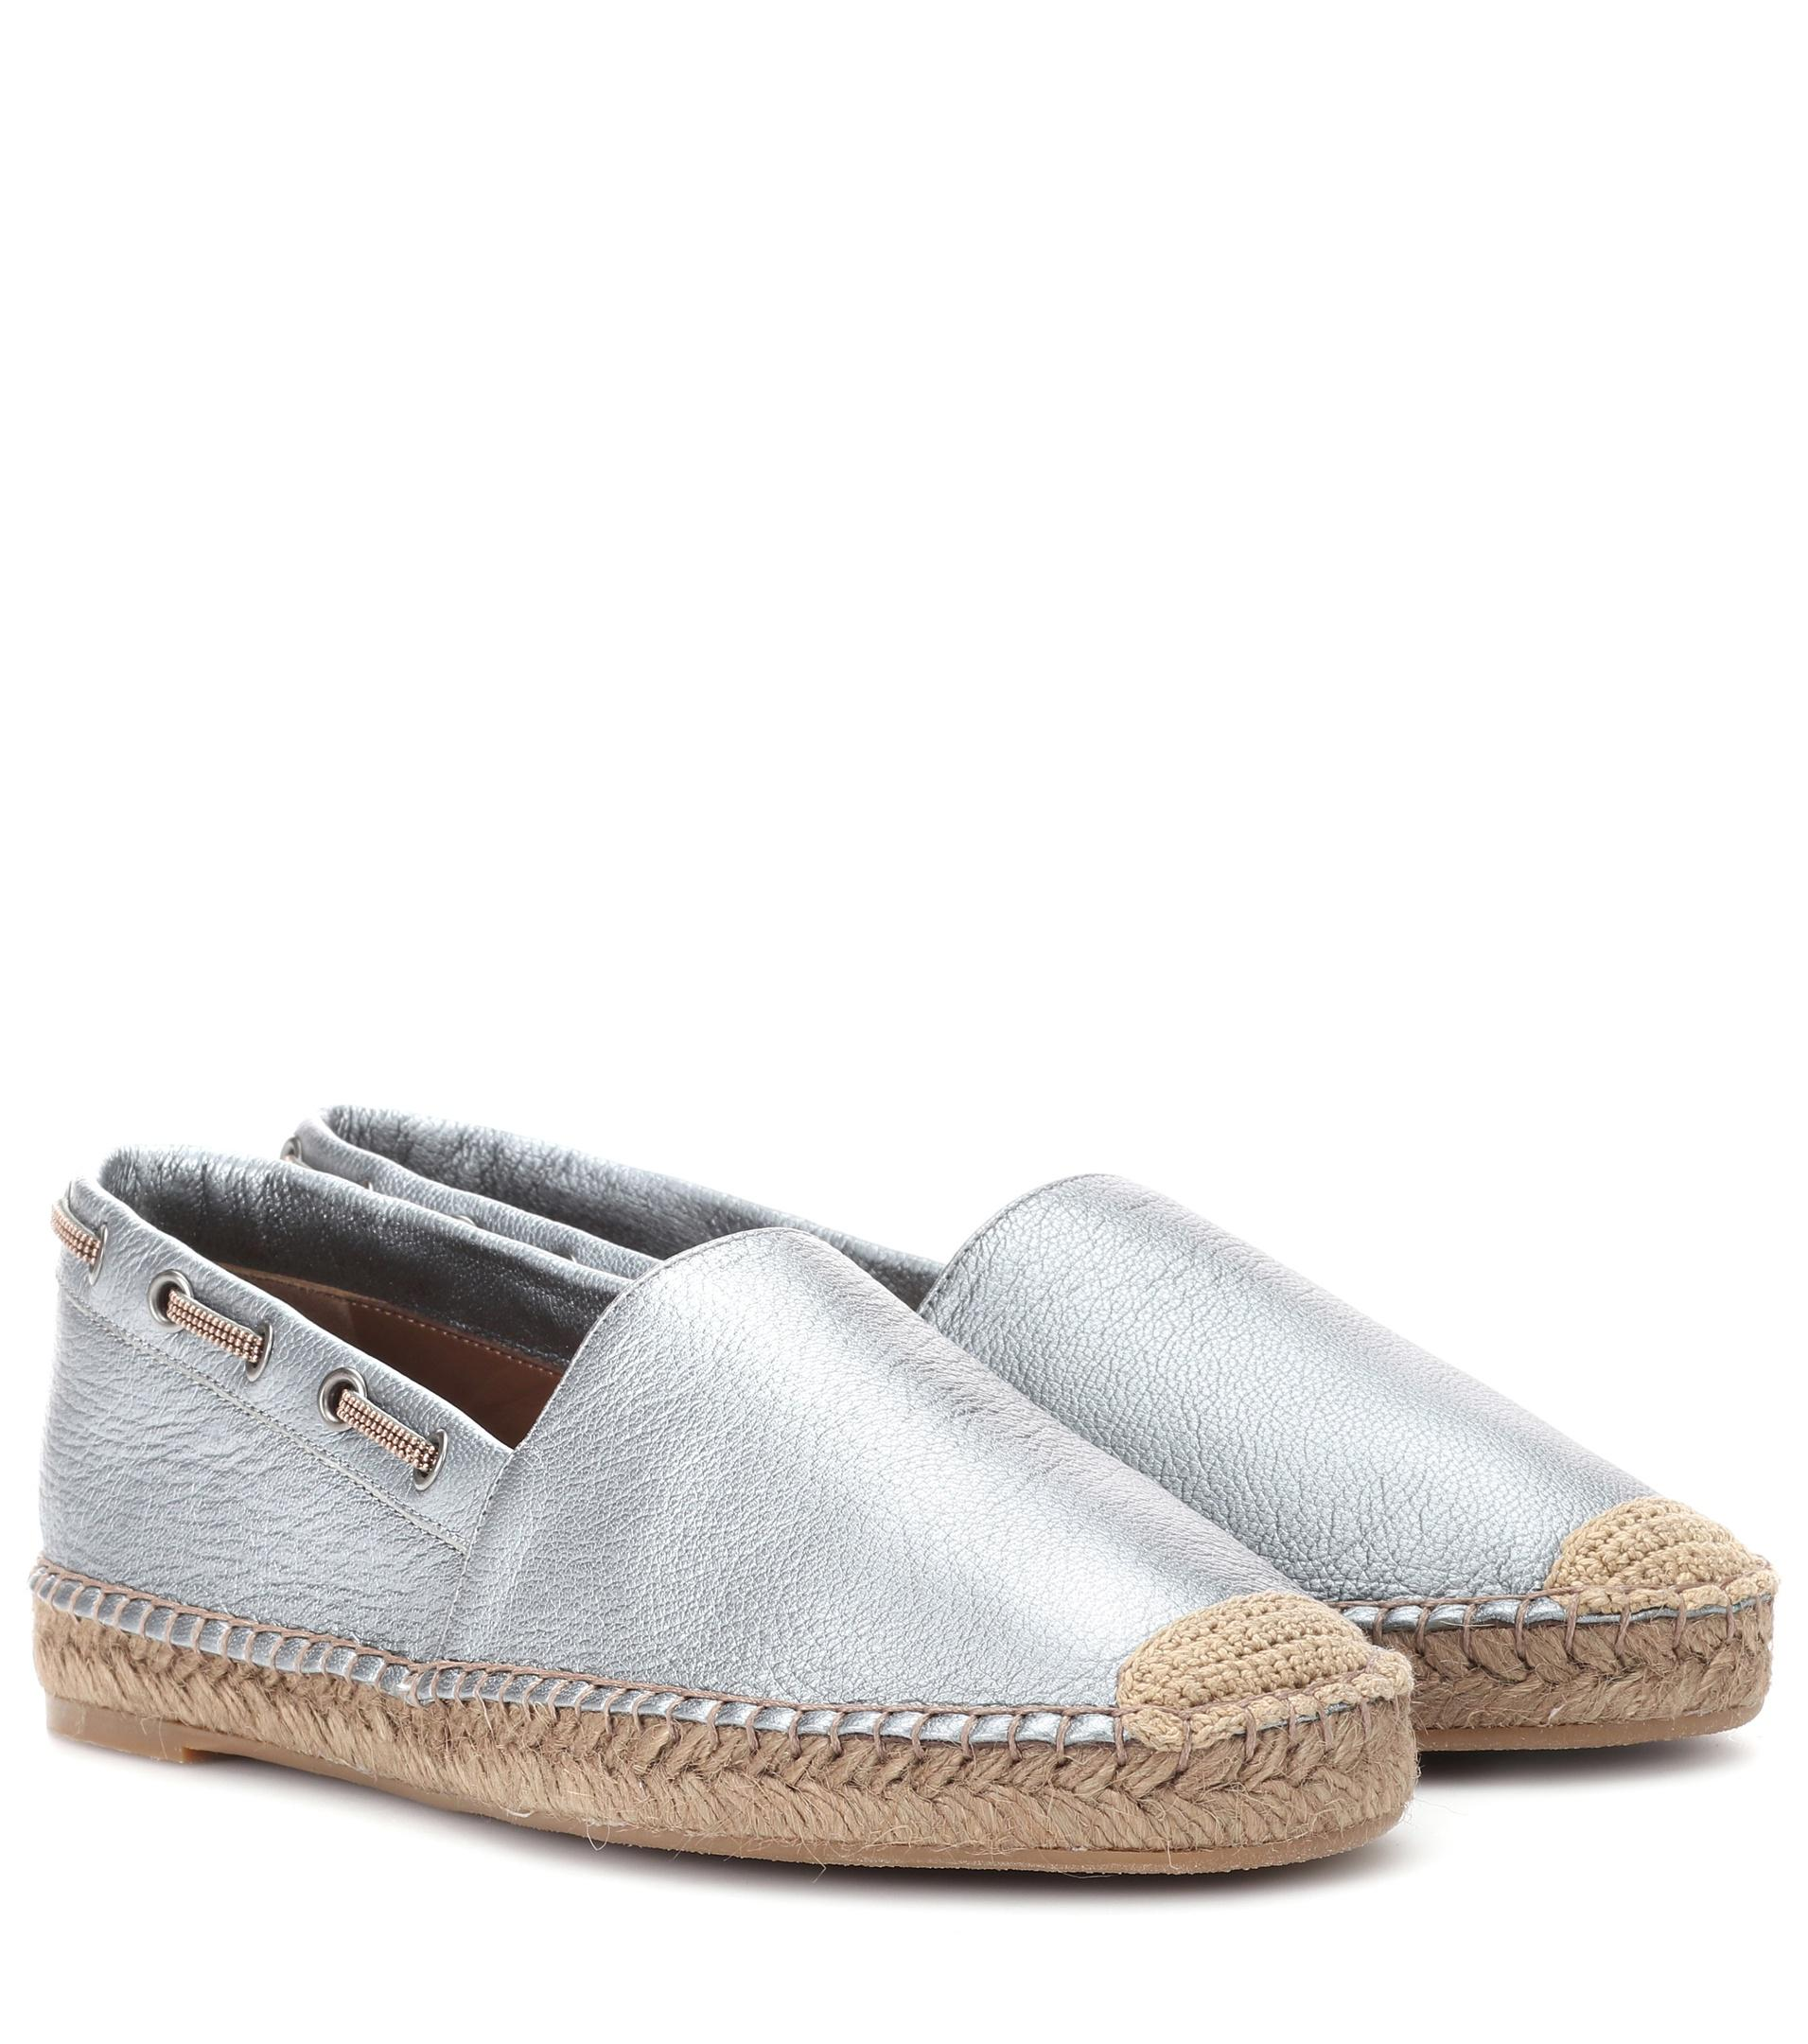 sale pick a best outlet visa payment Brunello Cucinelli Metallic leather espadrilles buy cheap low price fee shipping sale how much outlet pick a best qrGdAfYL